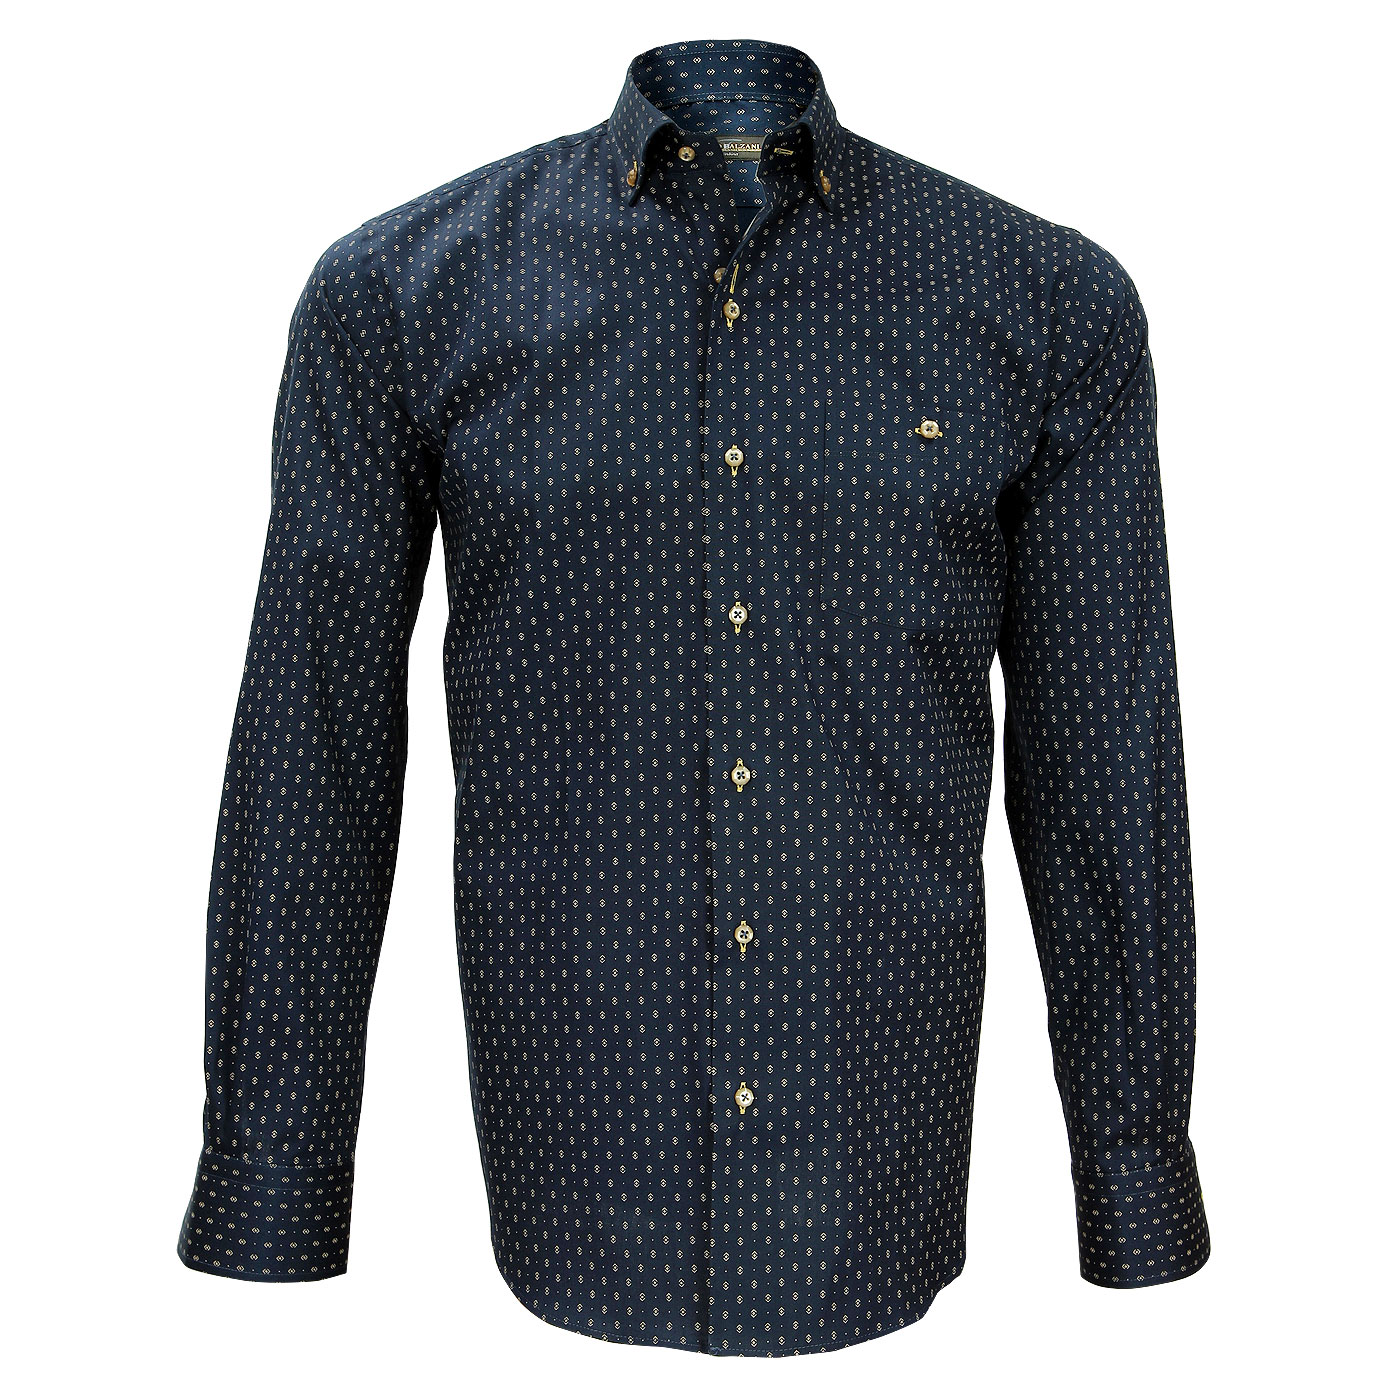 Camisa casual estampada